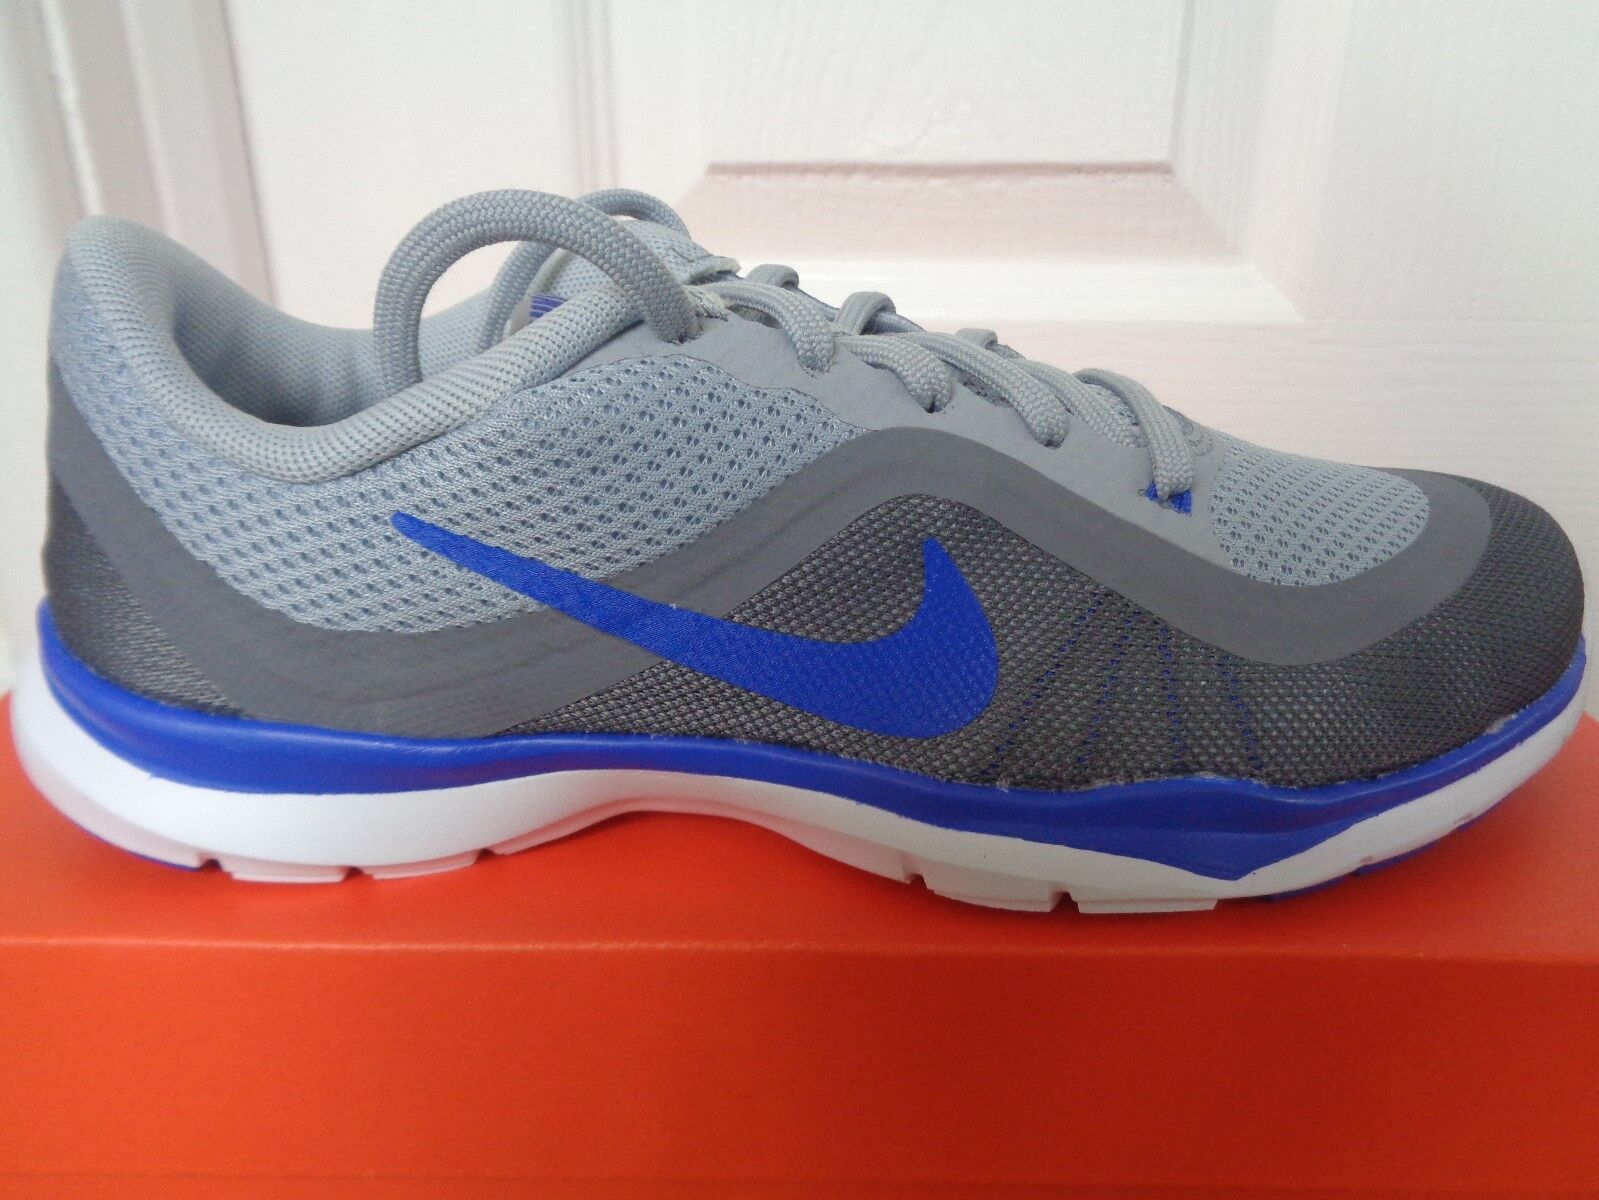 4d27a9df17087 Nike Womens Flex Trainer 6 Running Trainers 831217 010 SNEAKERS ...